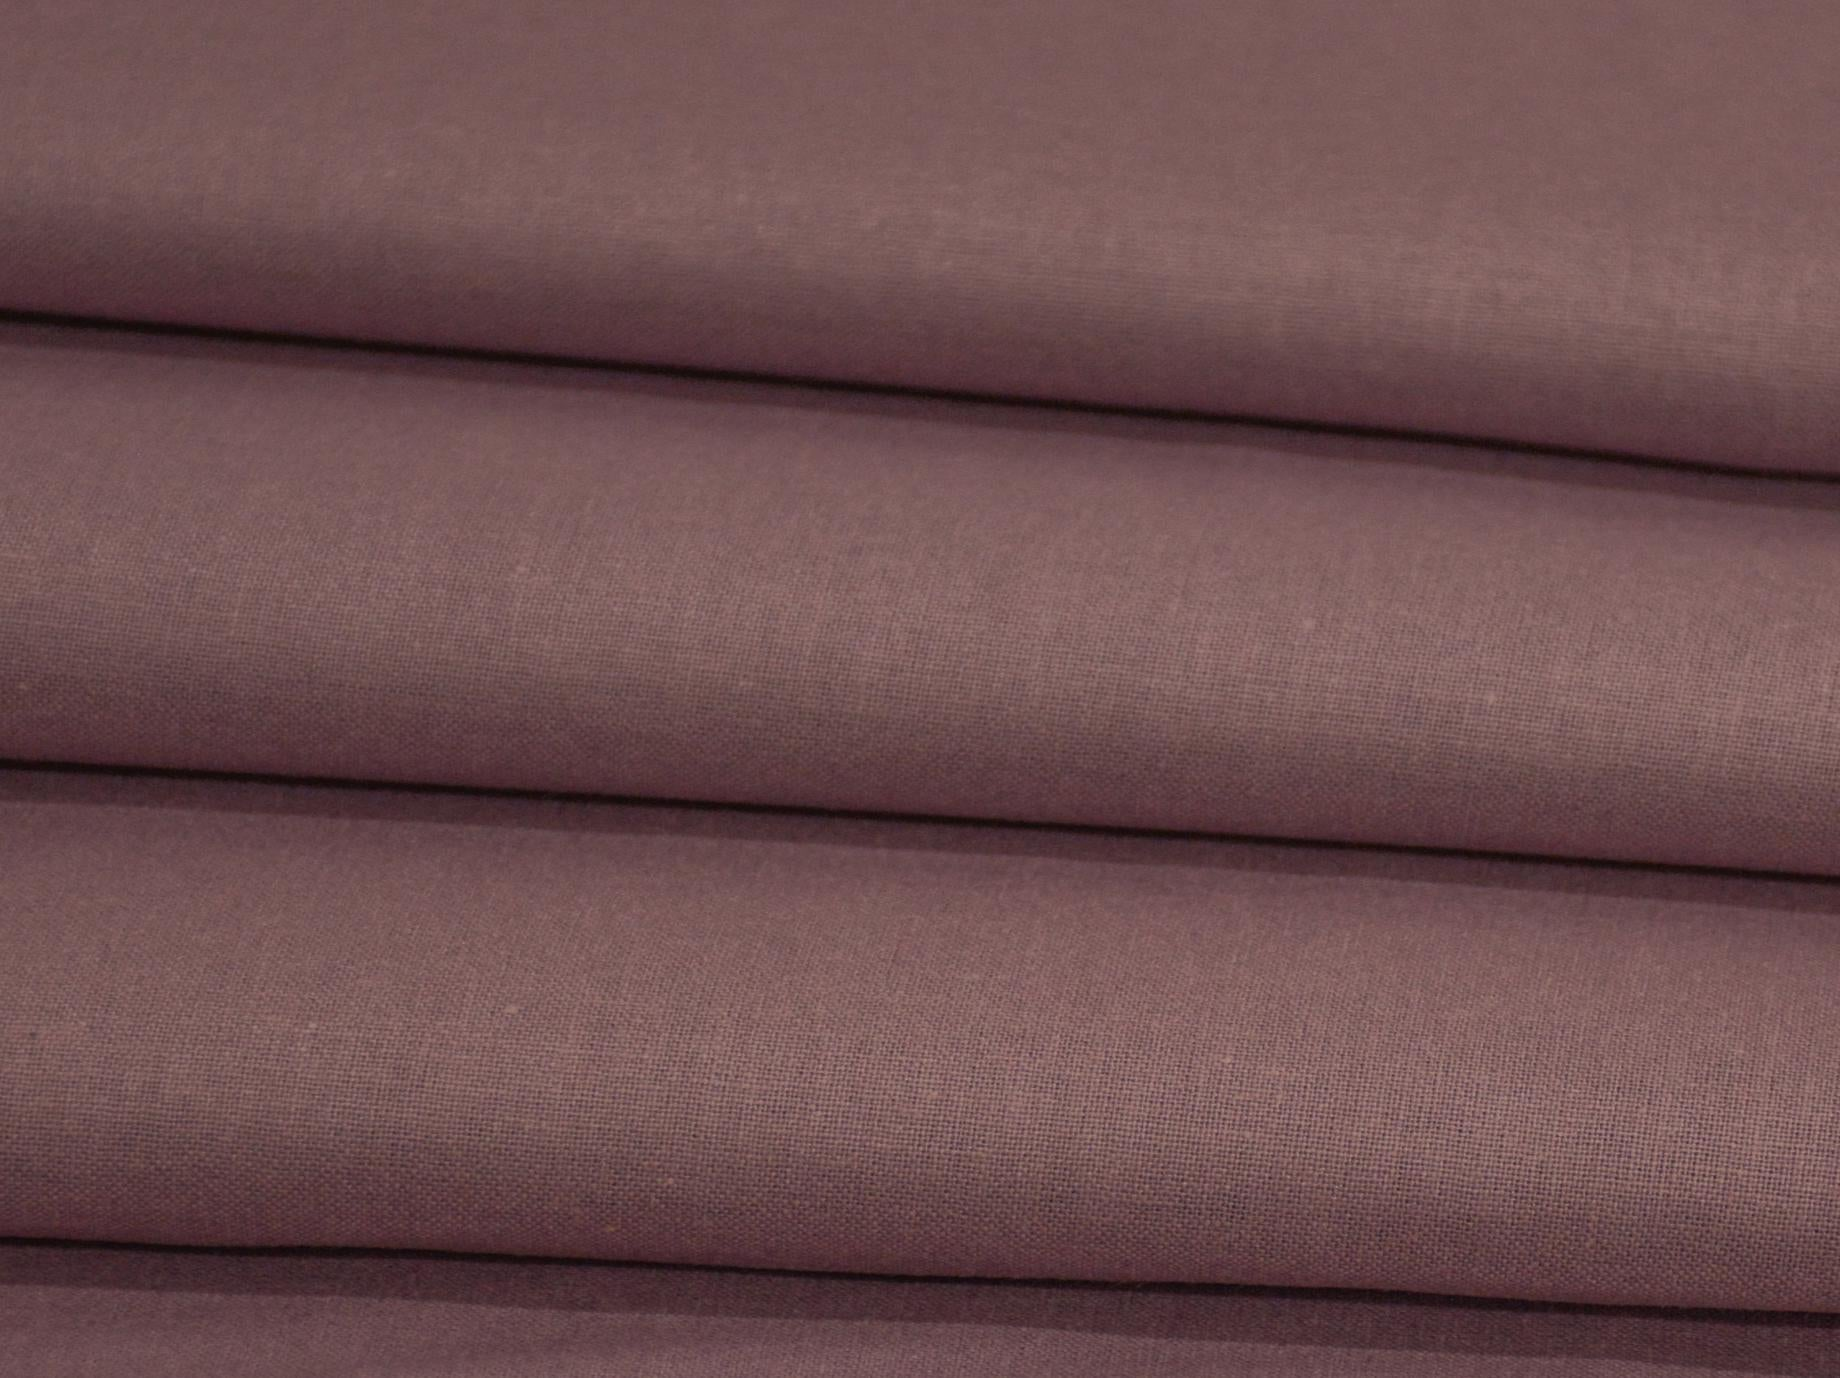 240cm PLAIN COTTON CURTAINING